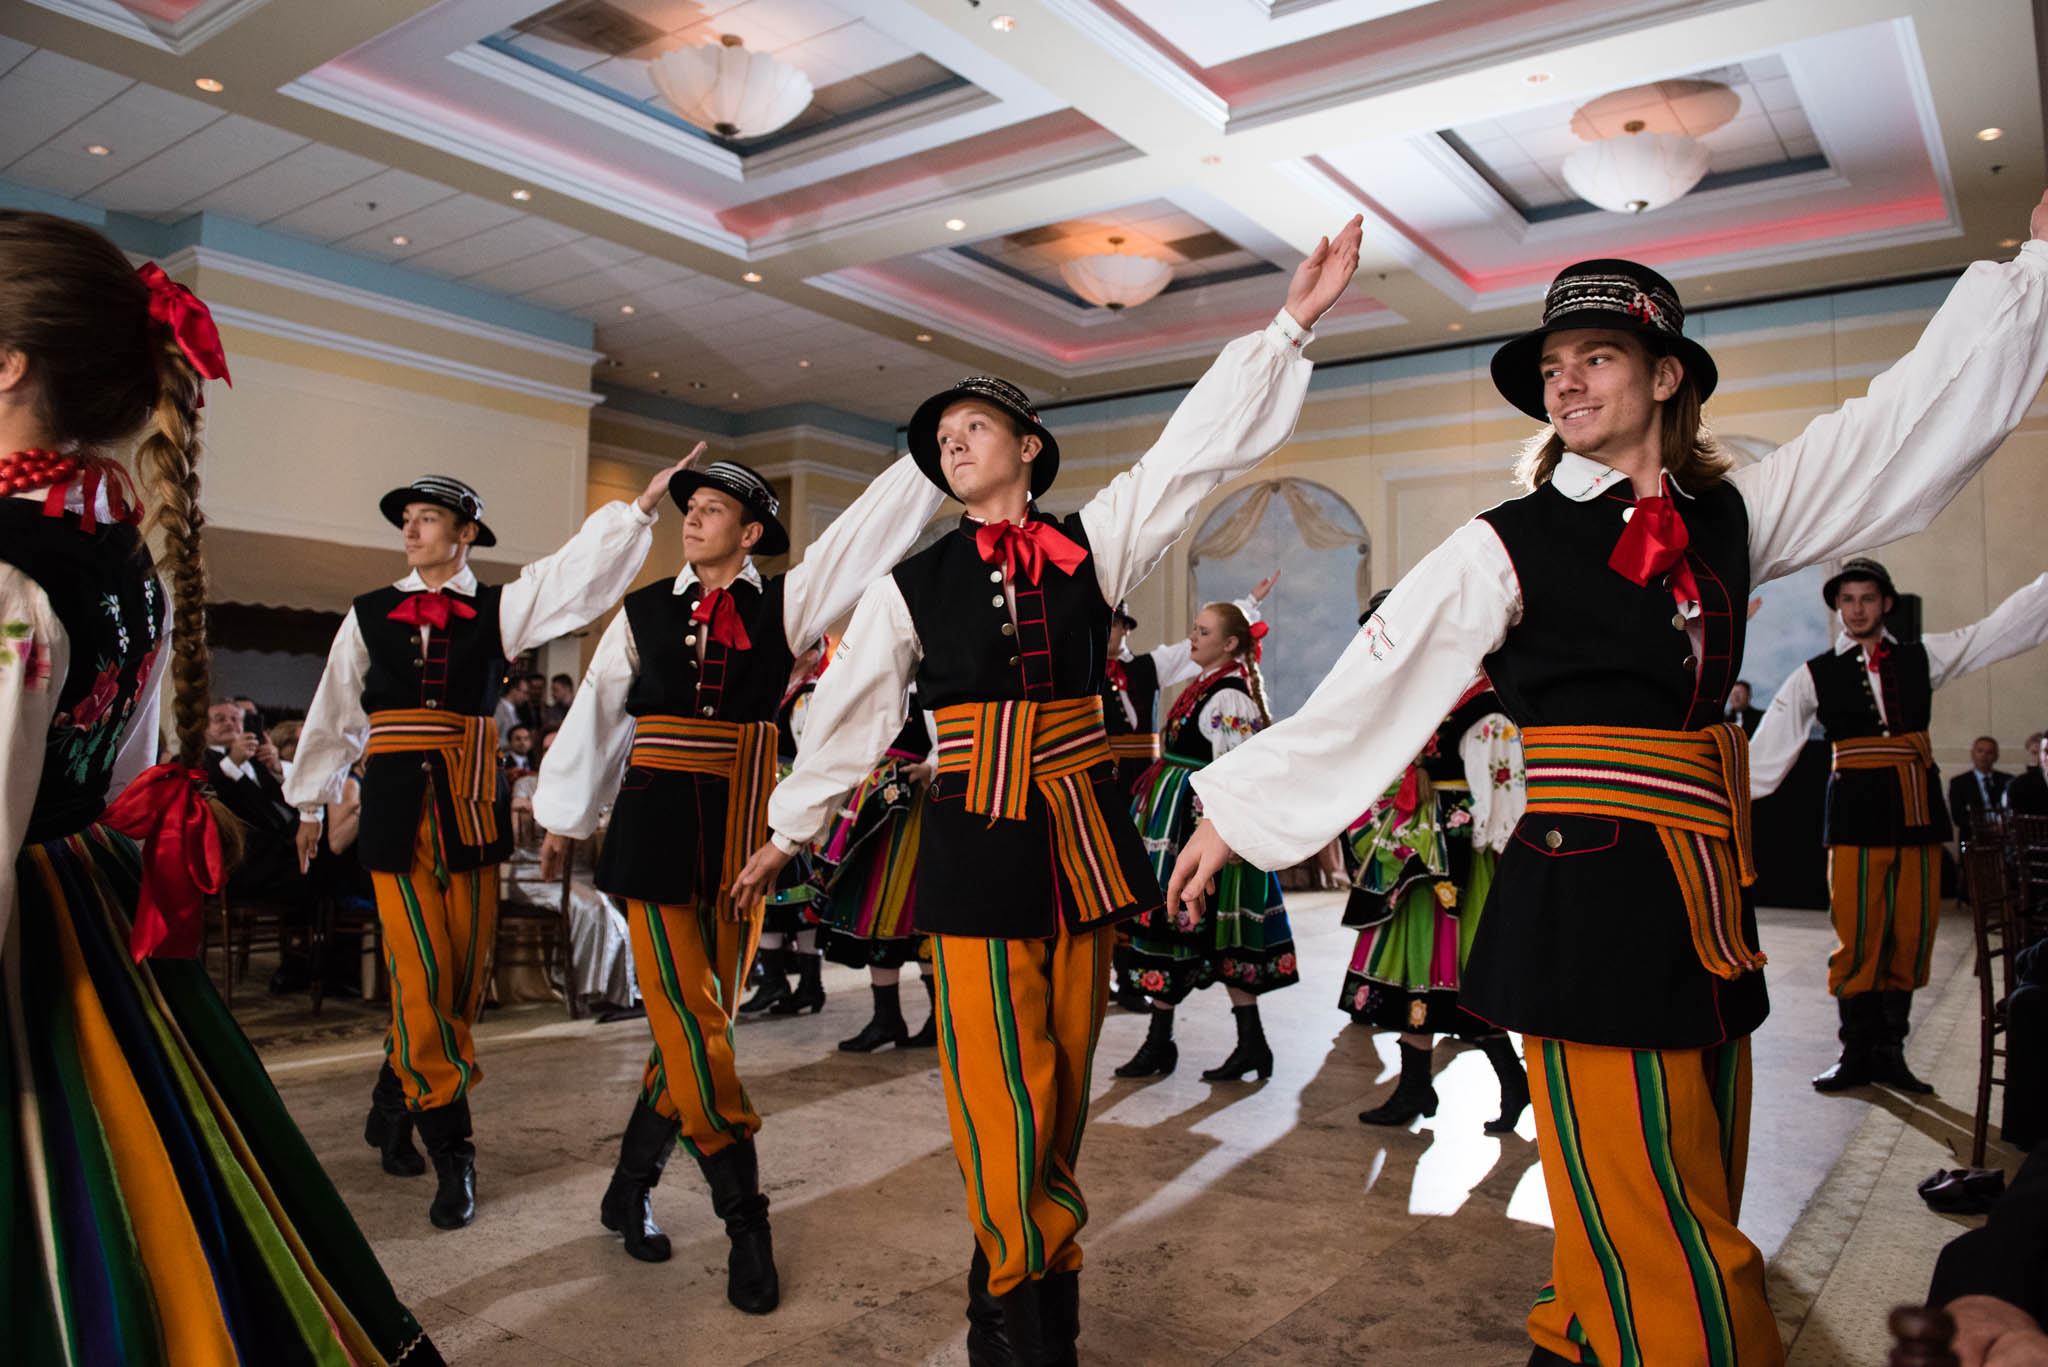 Traditional folk Polish dance group performing at a wedding